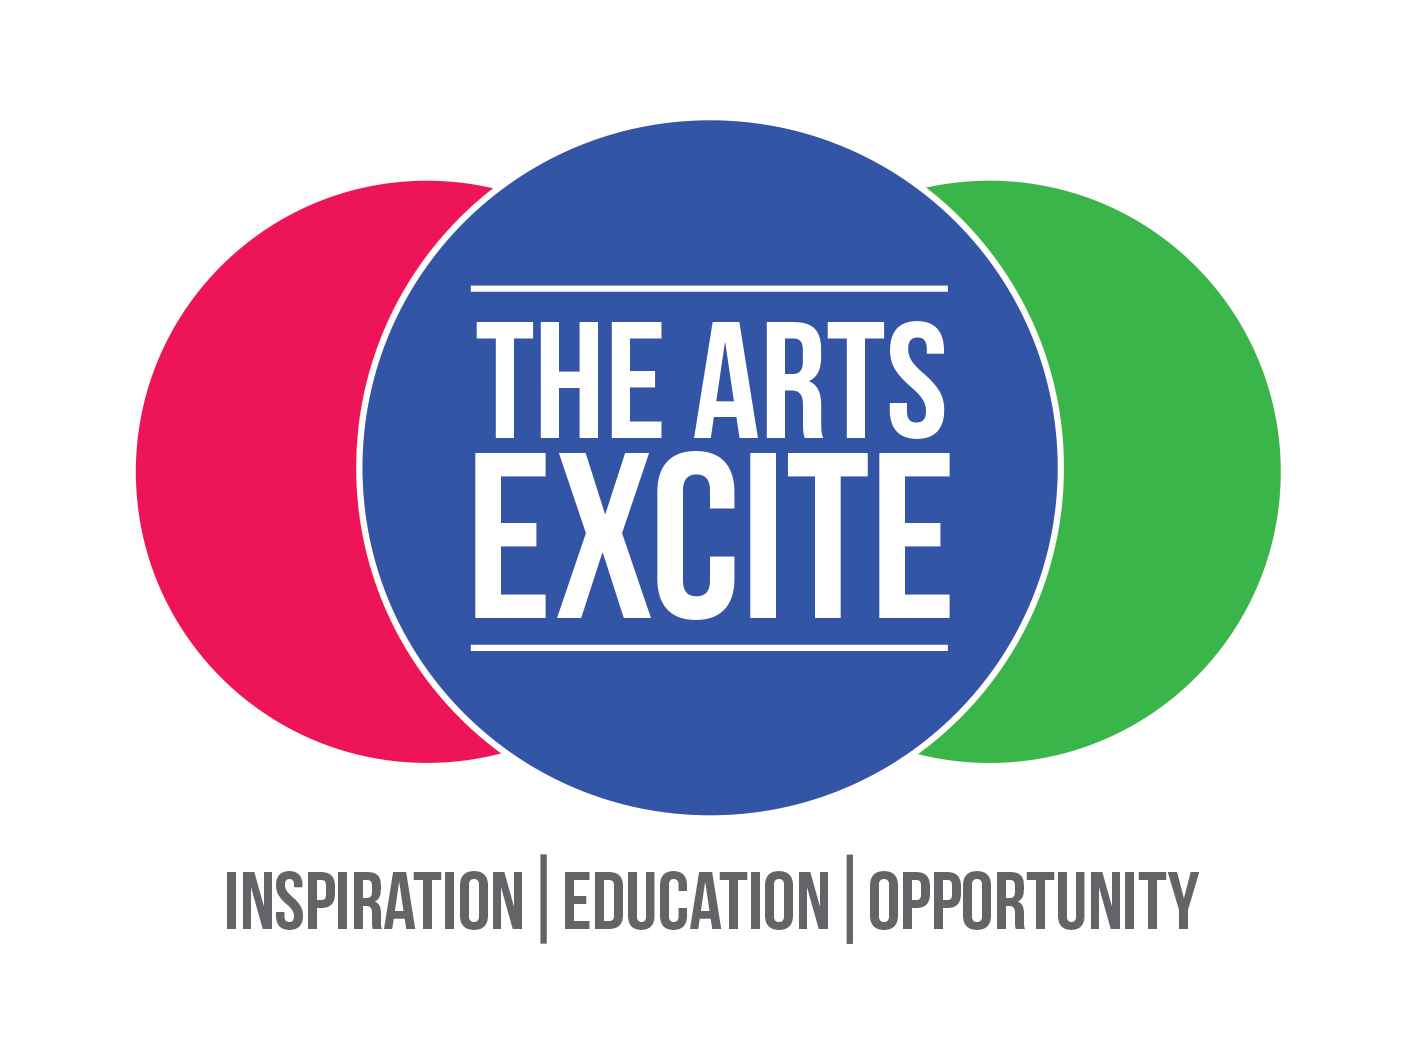 The Arts Excite CIC